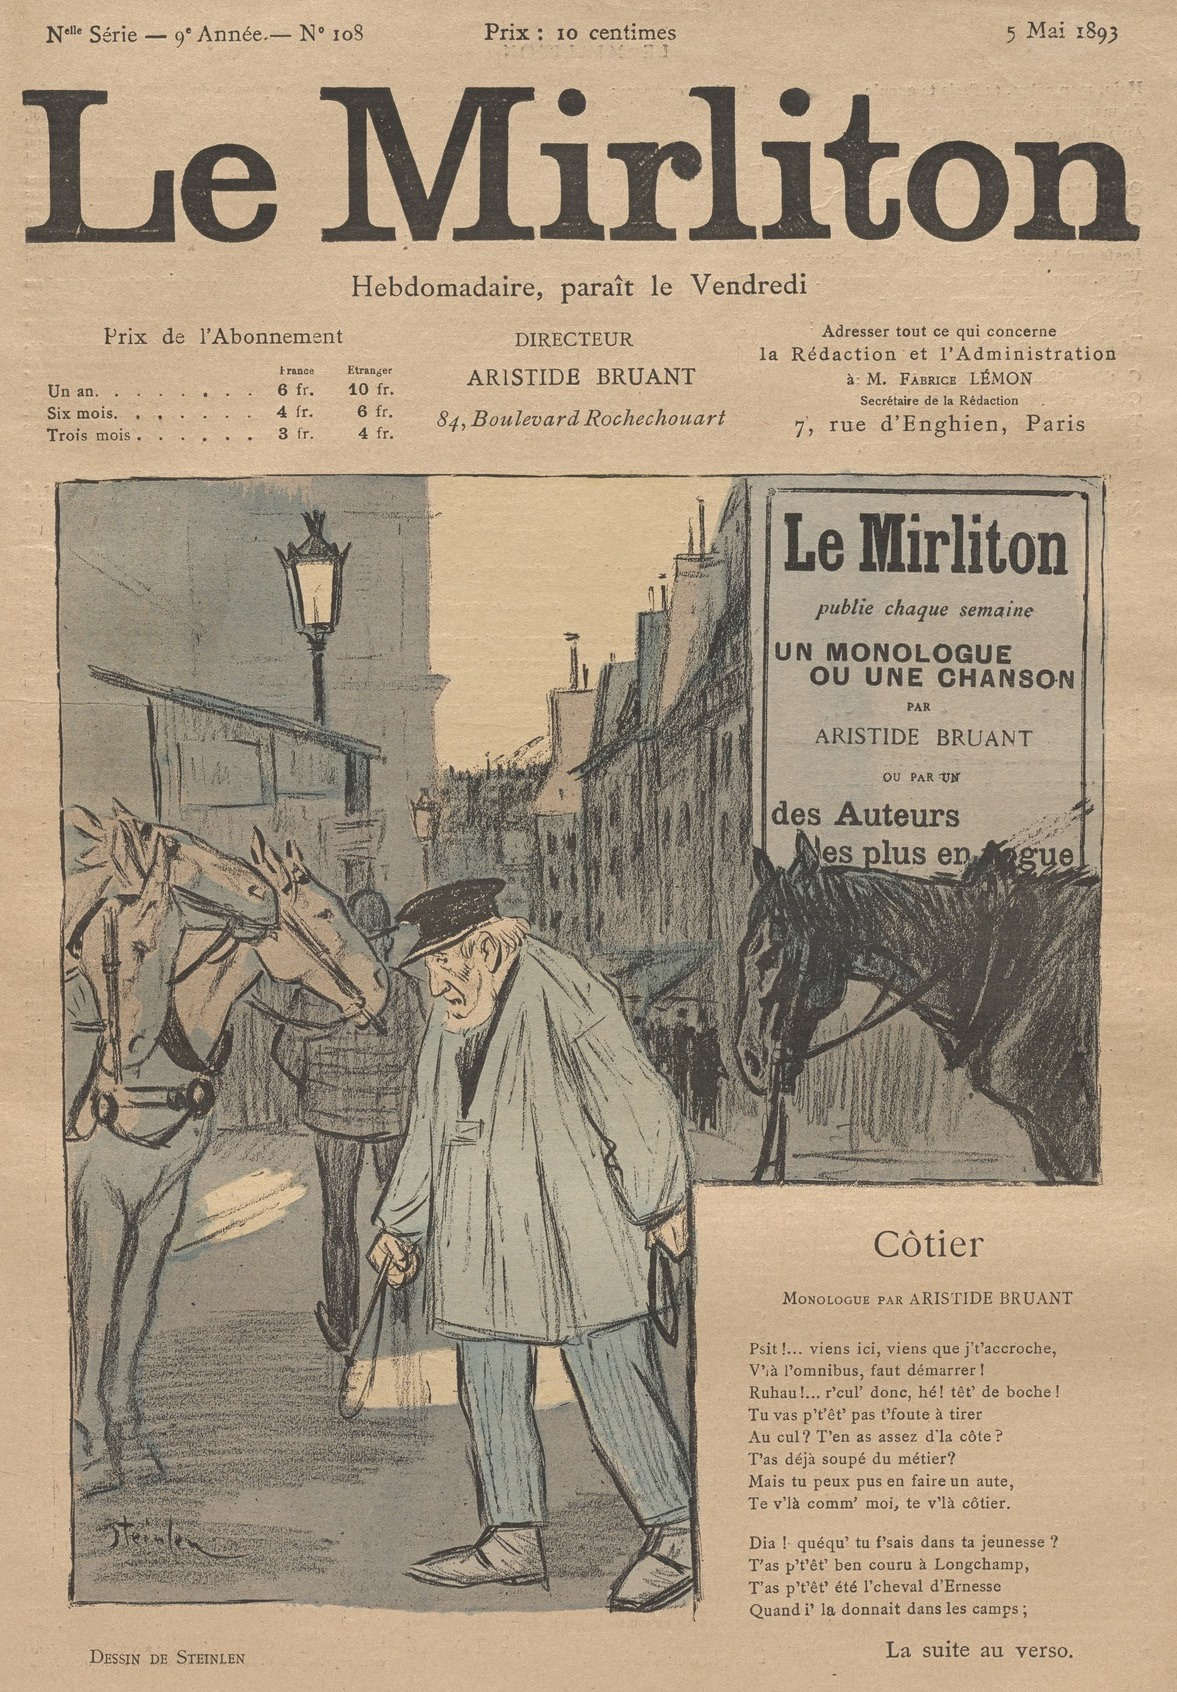 """Theophile-Alexander Steinlen. Illustration for the magazine """"Mirliton"""" No. 108, may 5, 1893"""